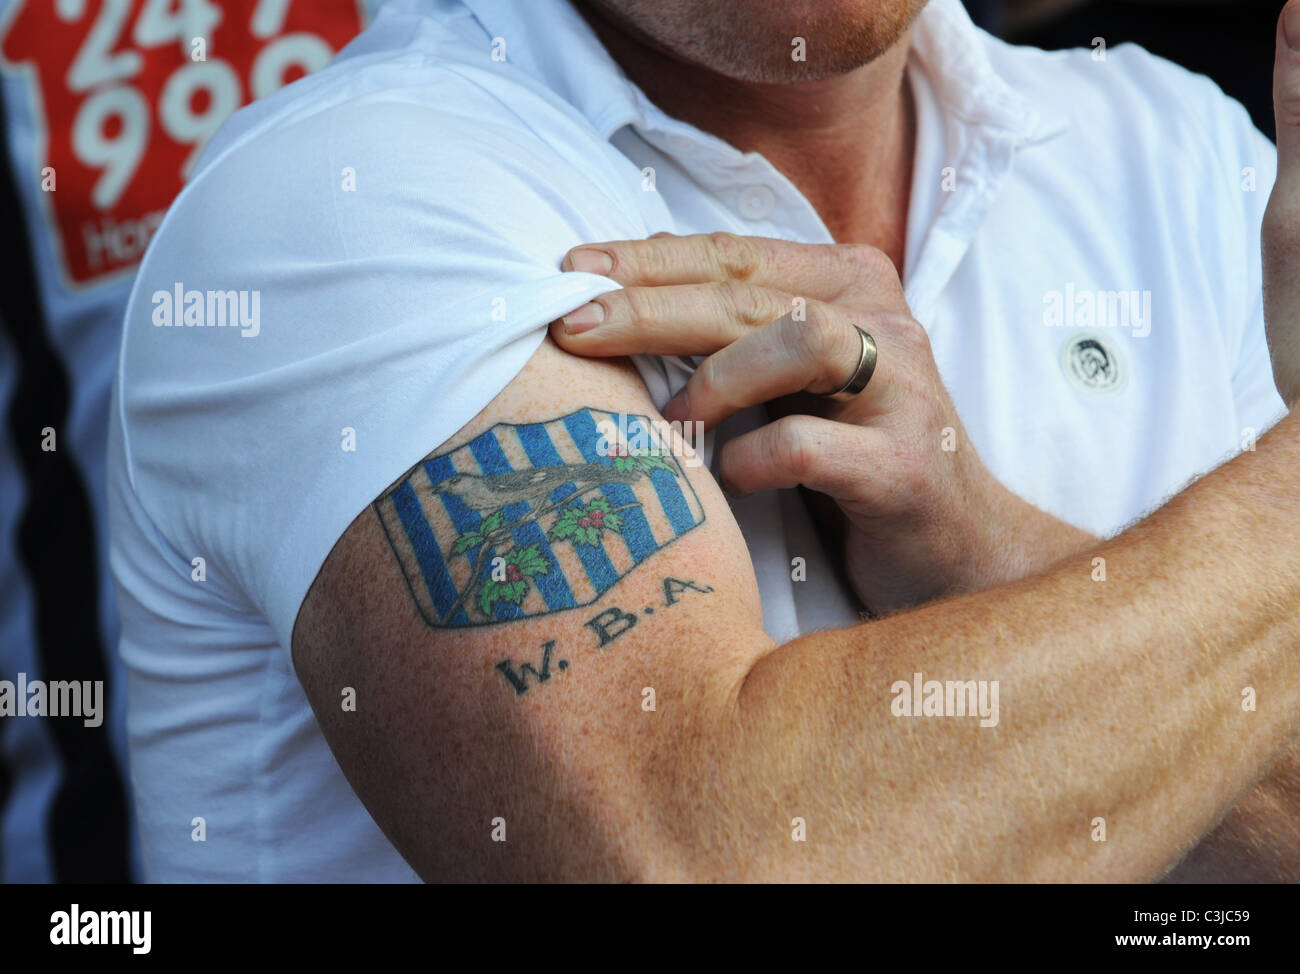 Football supporter showing his club badge tattoo - Stock Image